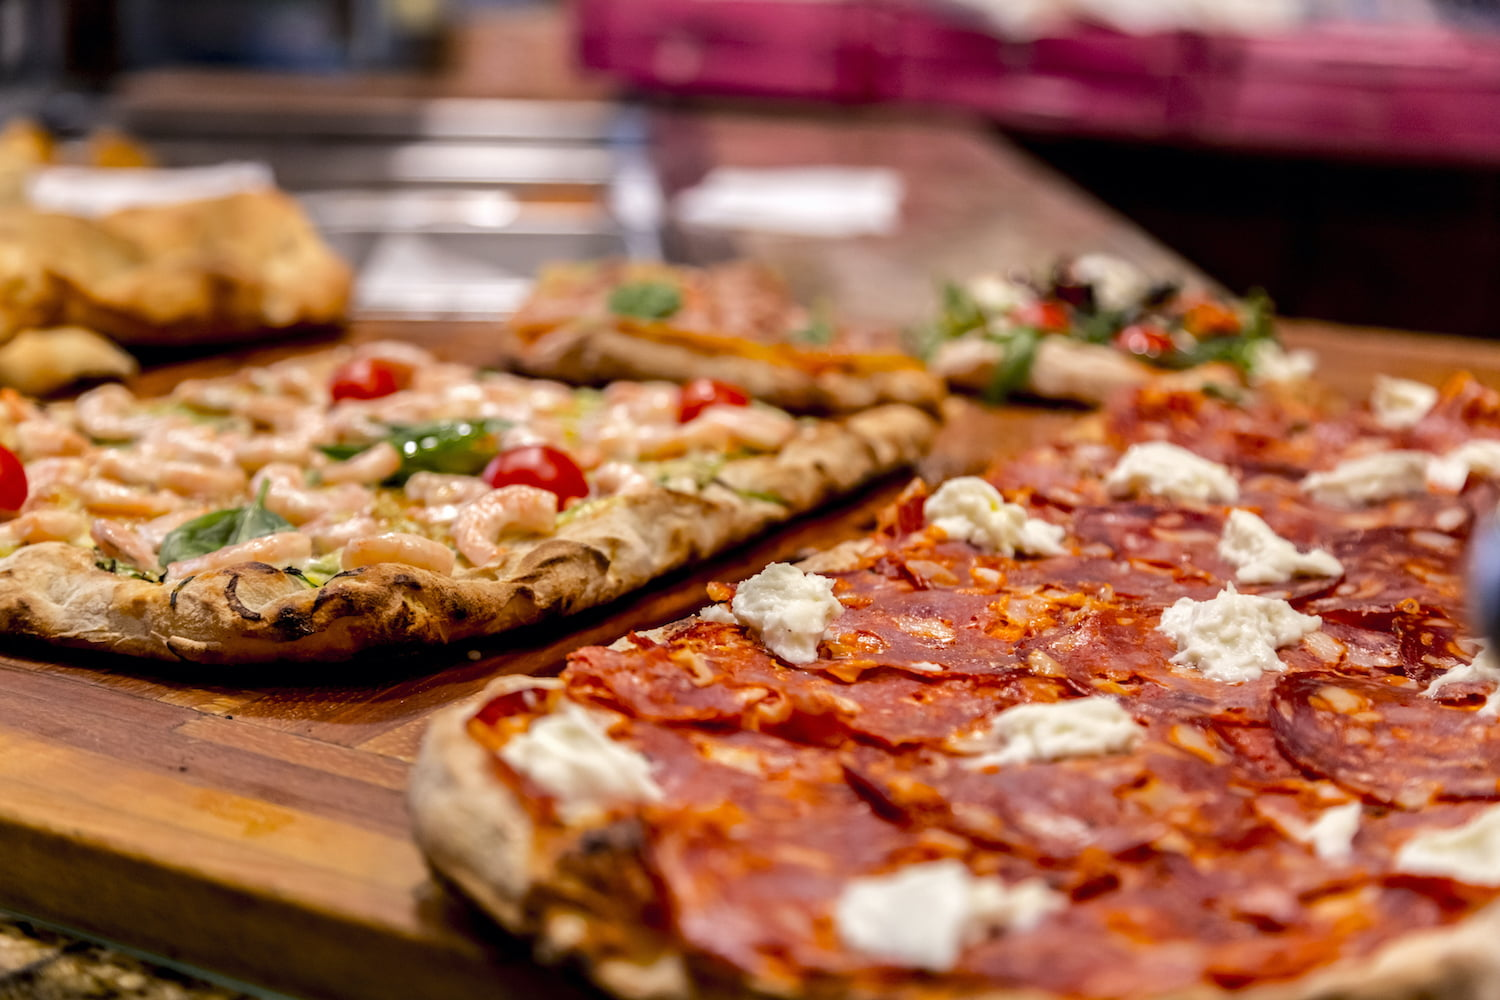 Flatbread pizzas at the Colonial Dining Room, one of the best places to eat in Natural Bridge